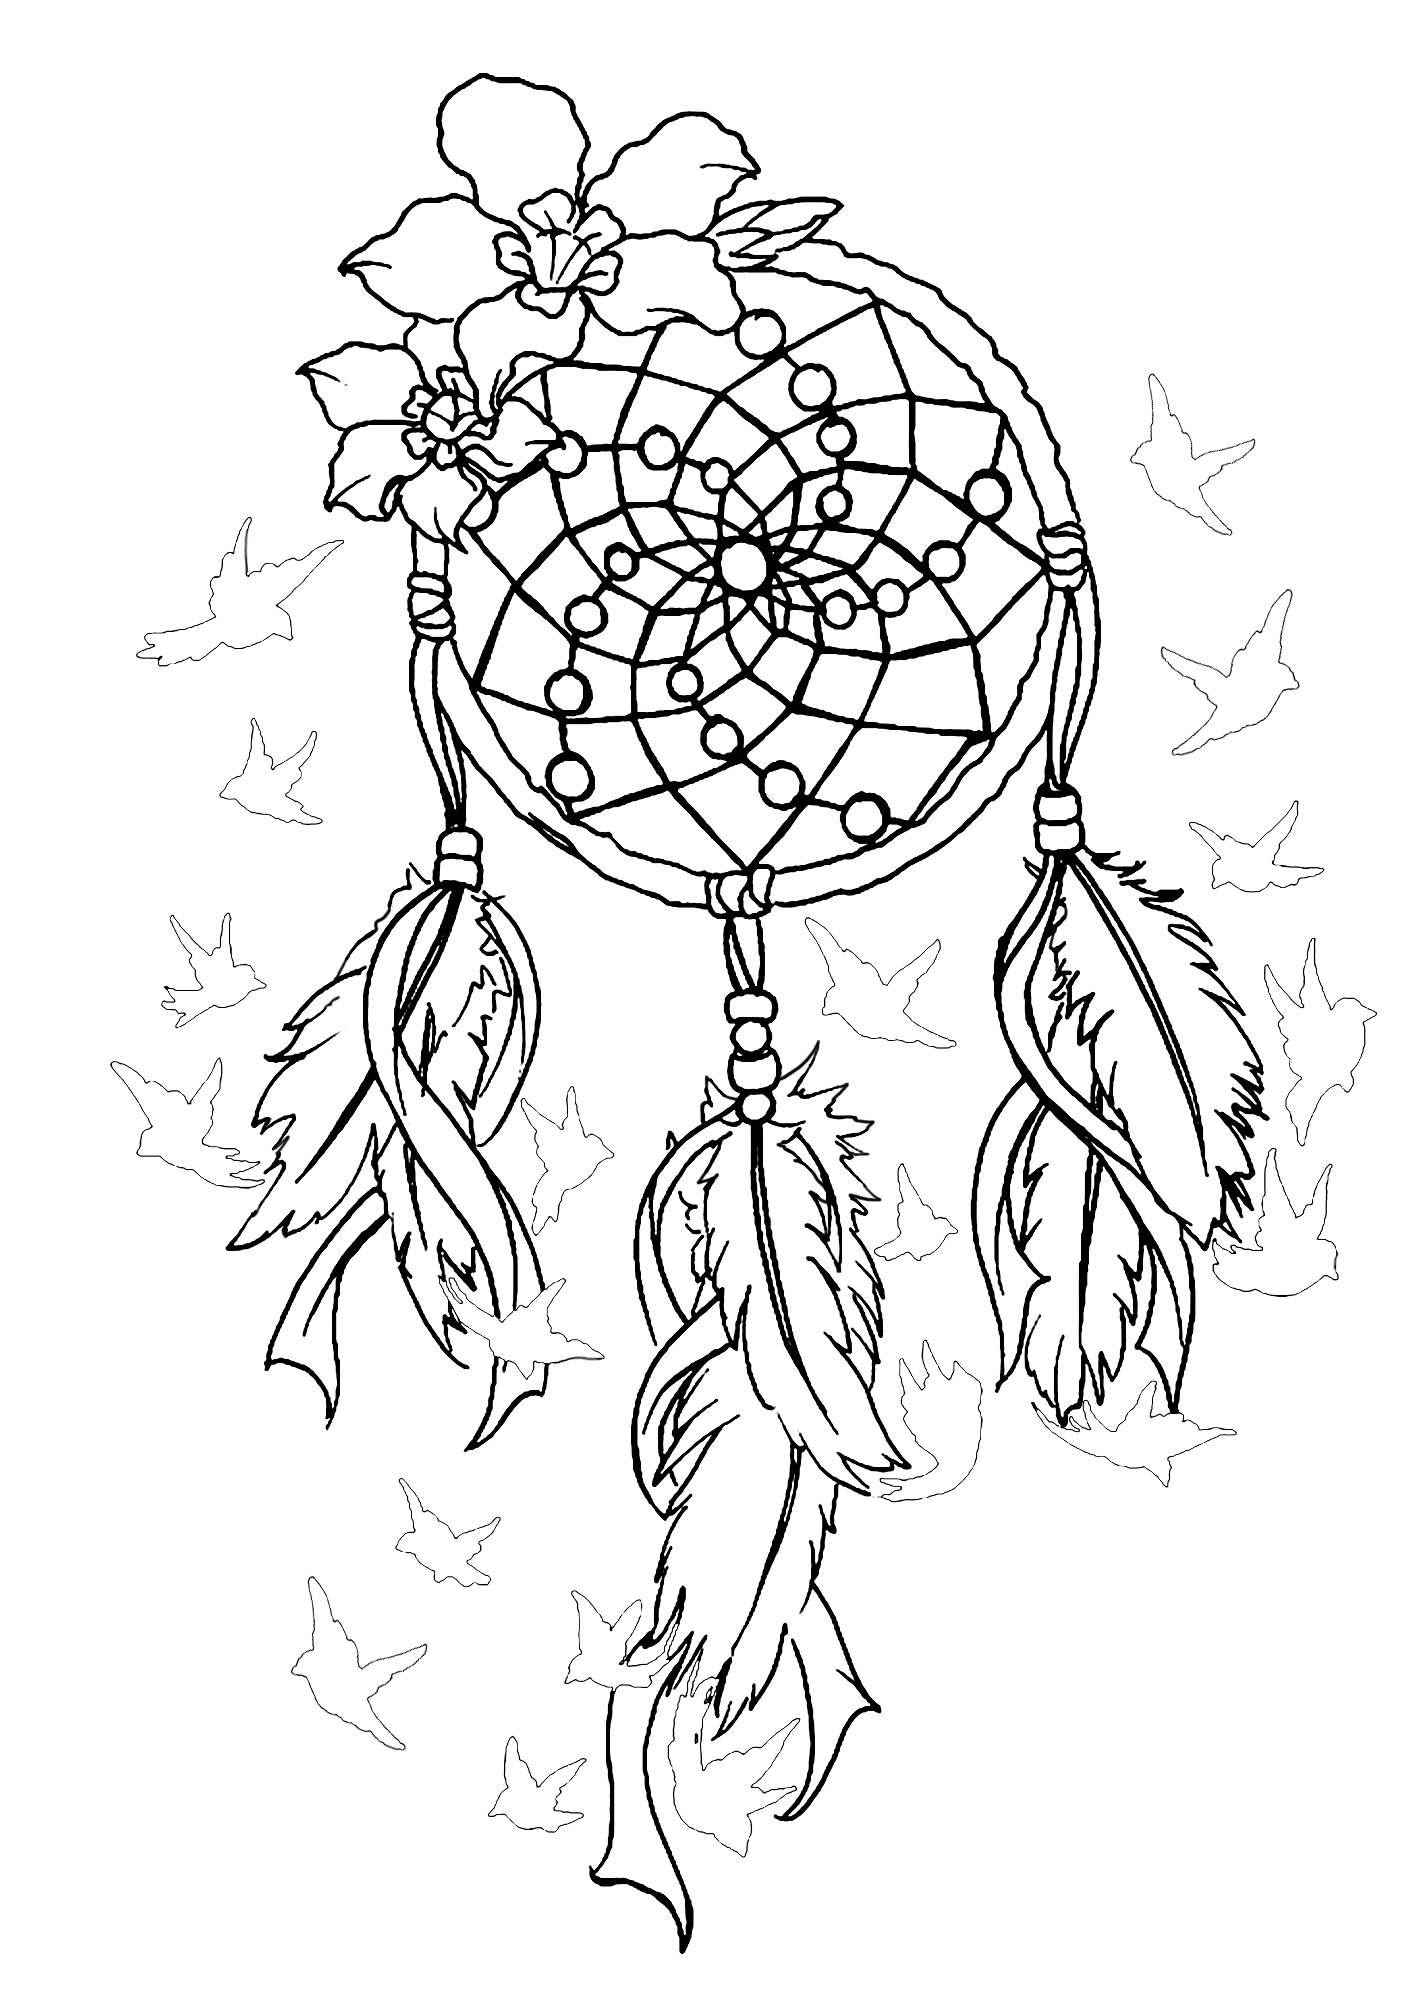 Coloring page of a magnificent dreamcatcher with birds